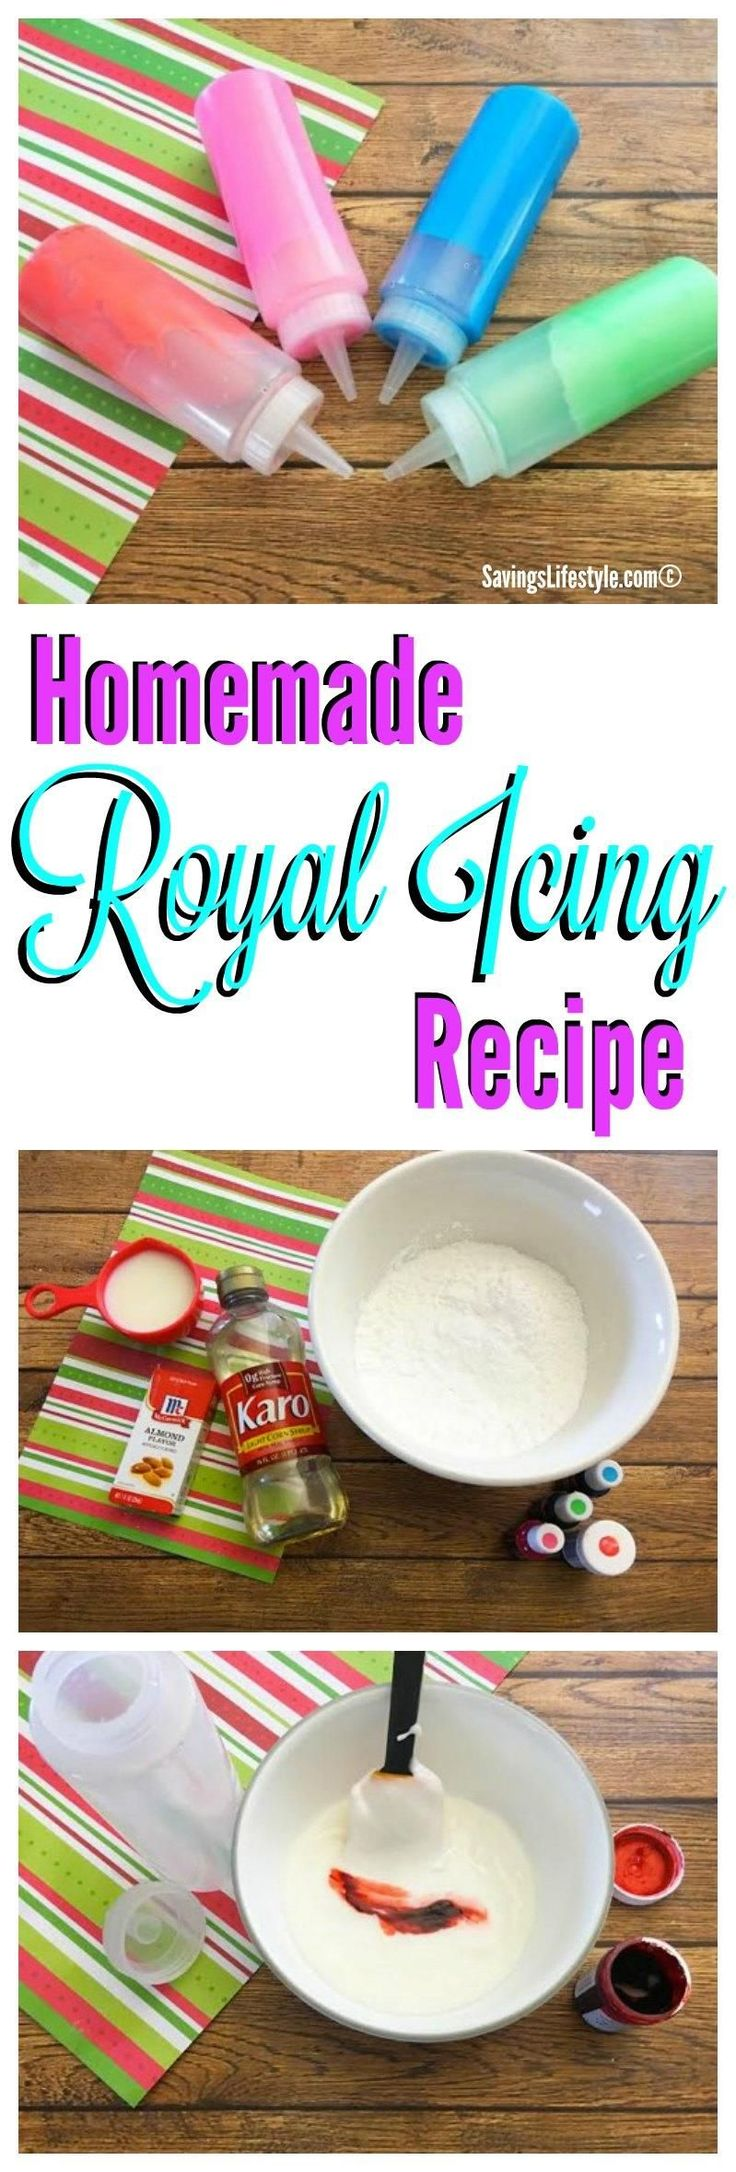 Easy Homemade Royal Icing Recipe